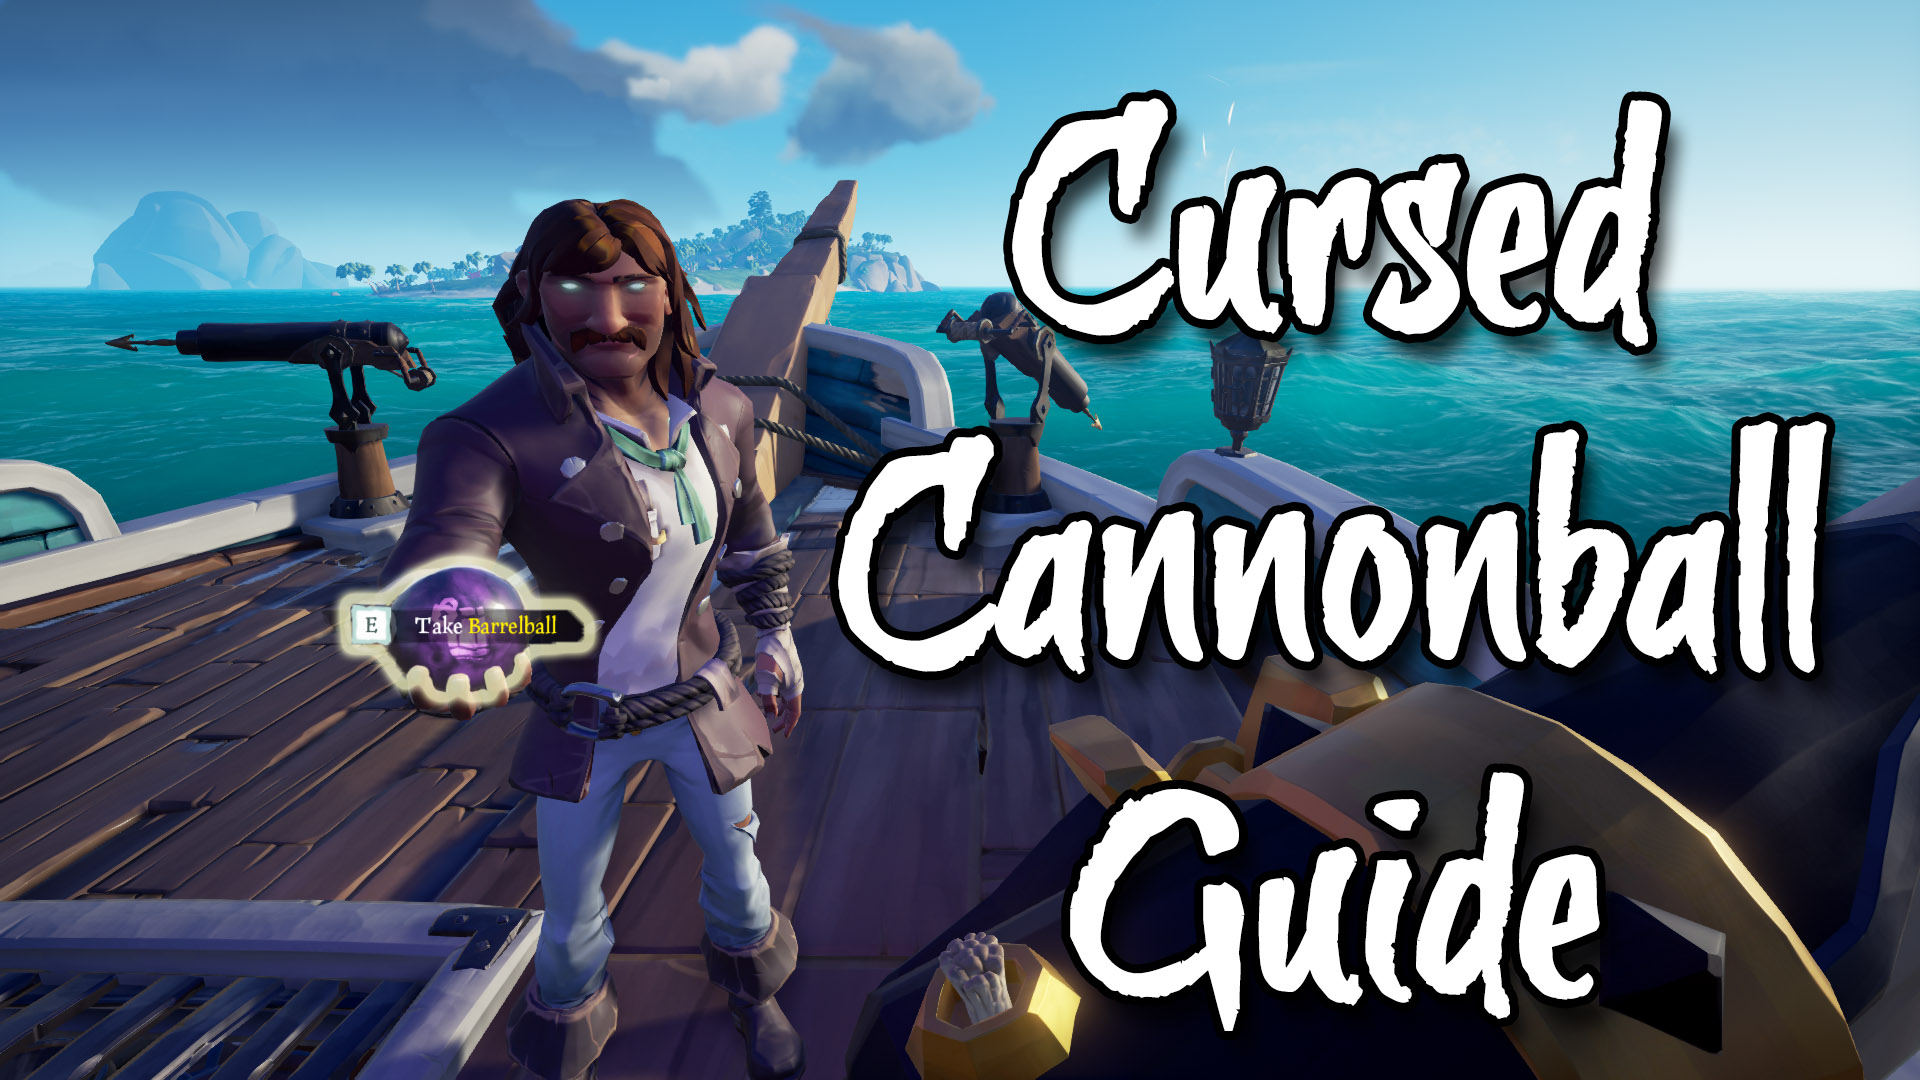 Cursed Cannonball Guide Thumbnail